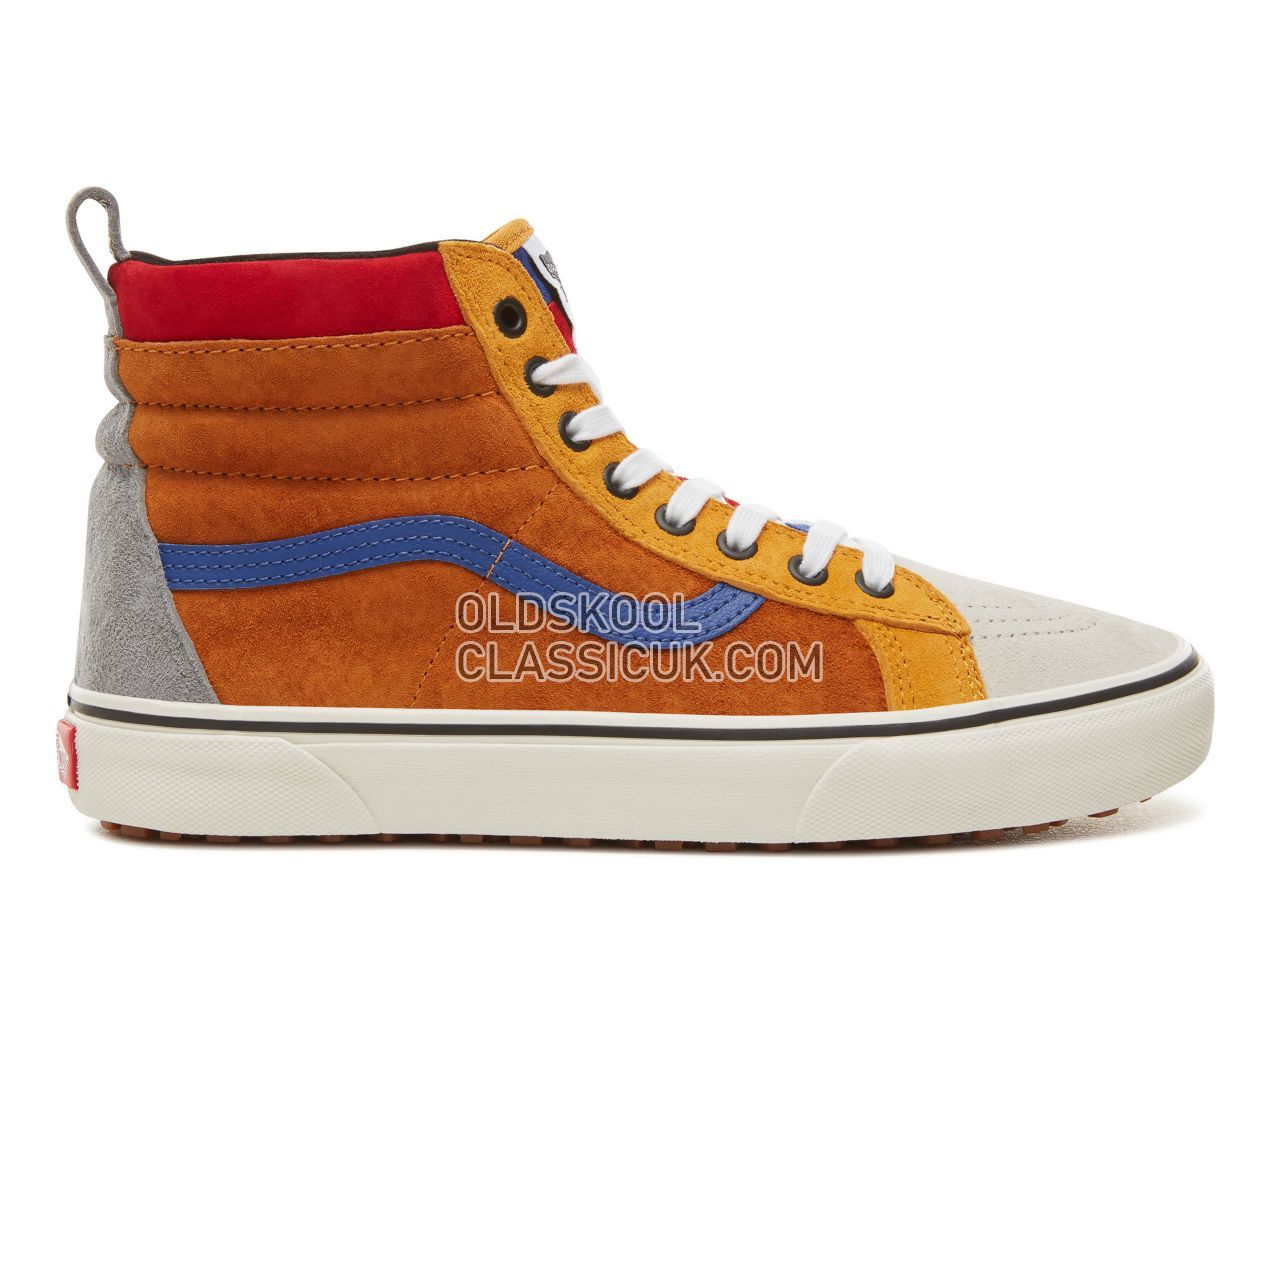 Vans Sk8-Hi MTE Sneakers Mens (Mte) Sudan Brown/Mazarine Blue VA33TXUC9  Shoes - £58